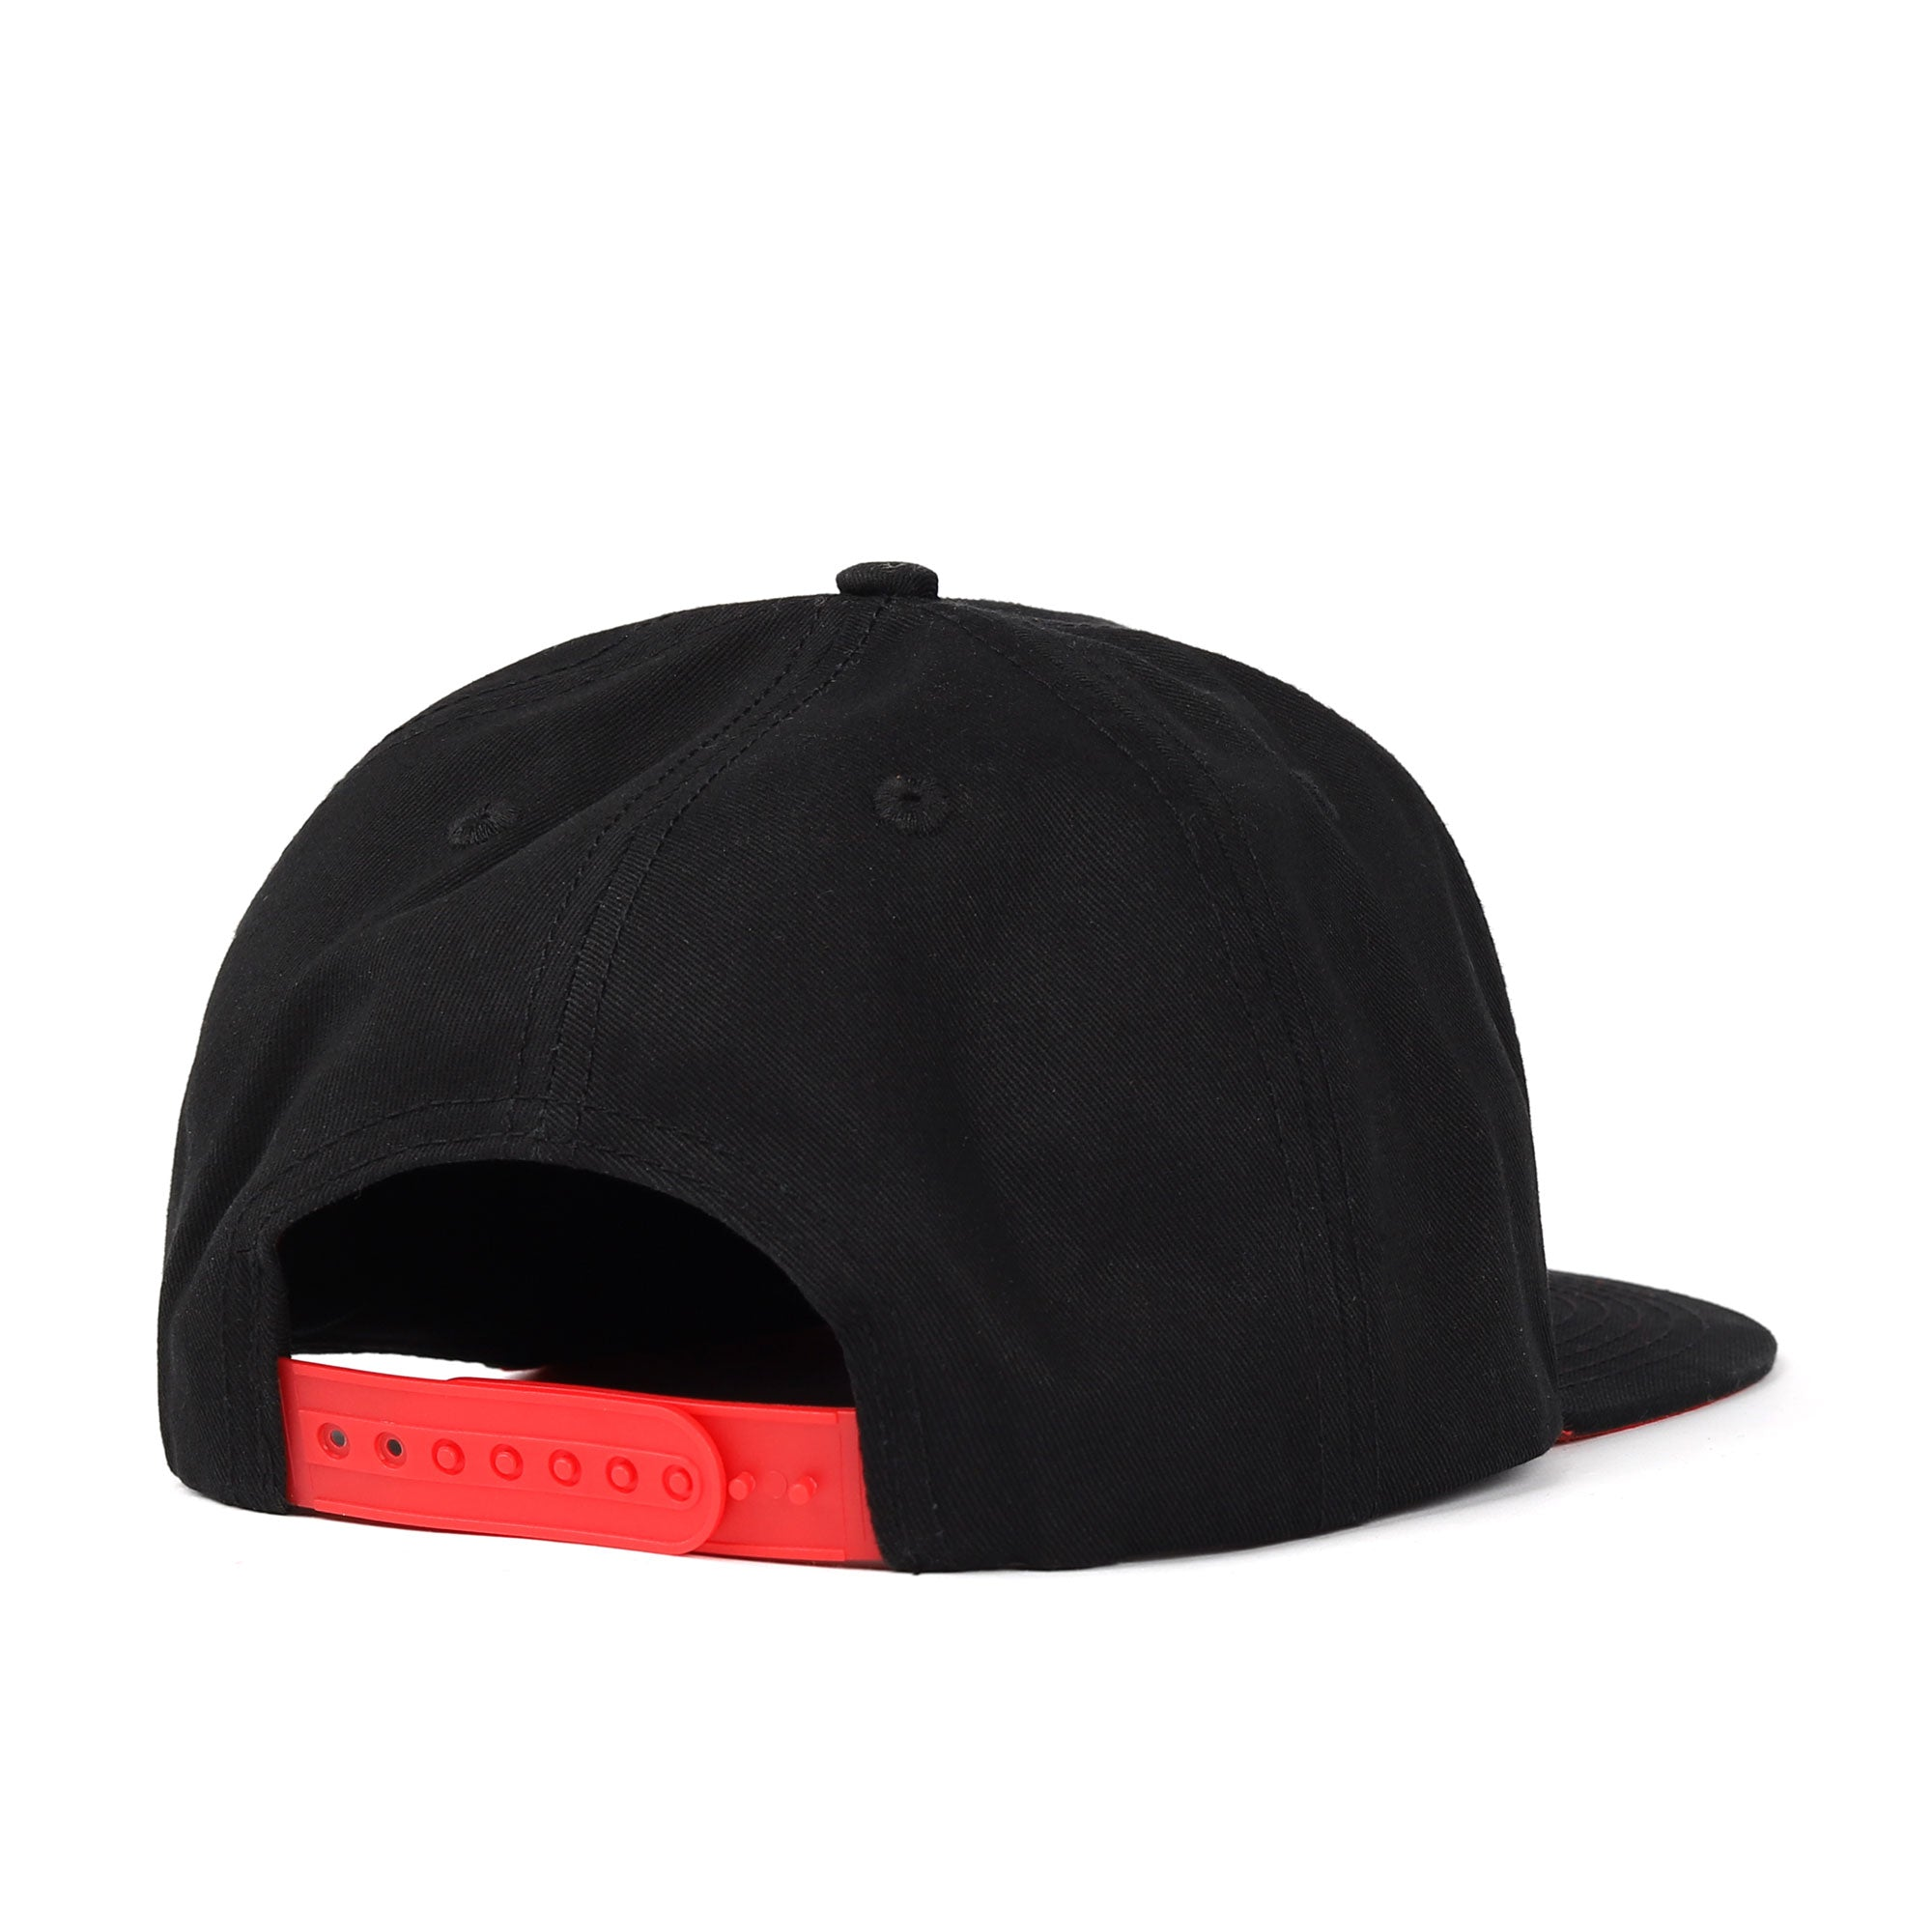 Santa Cruz Classic Patch Snapback Cap Product Photo #2